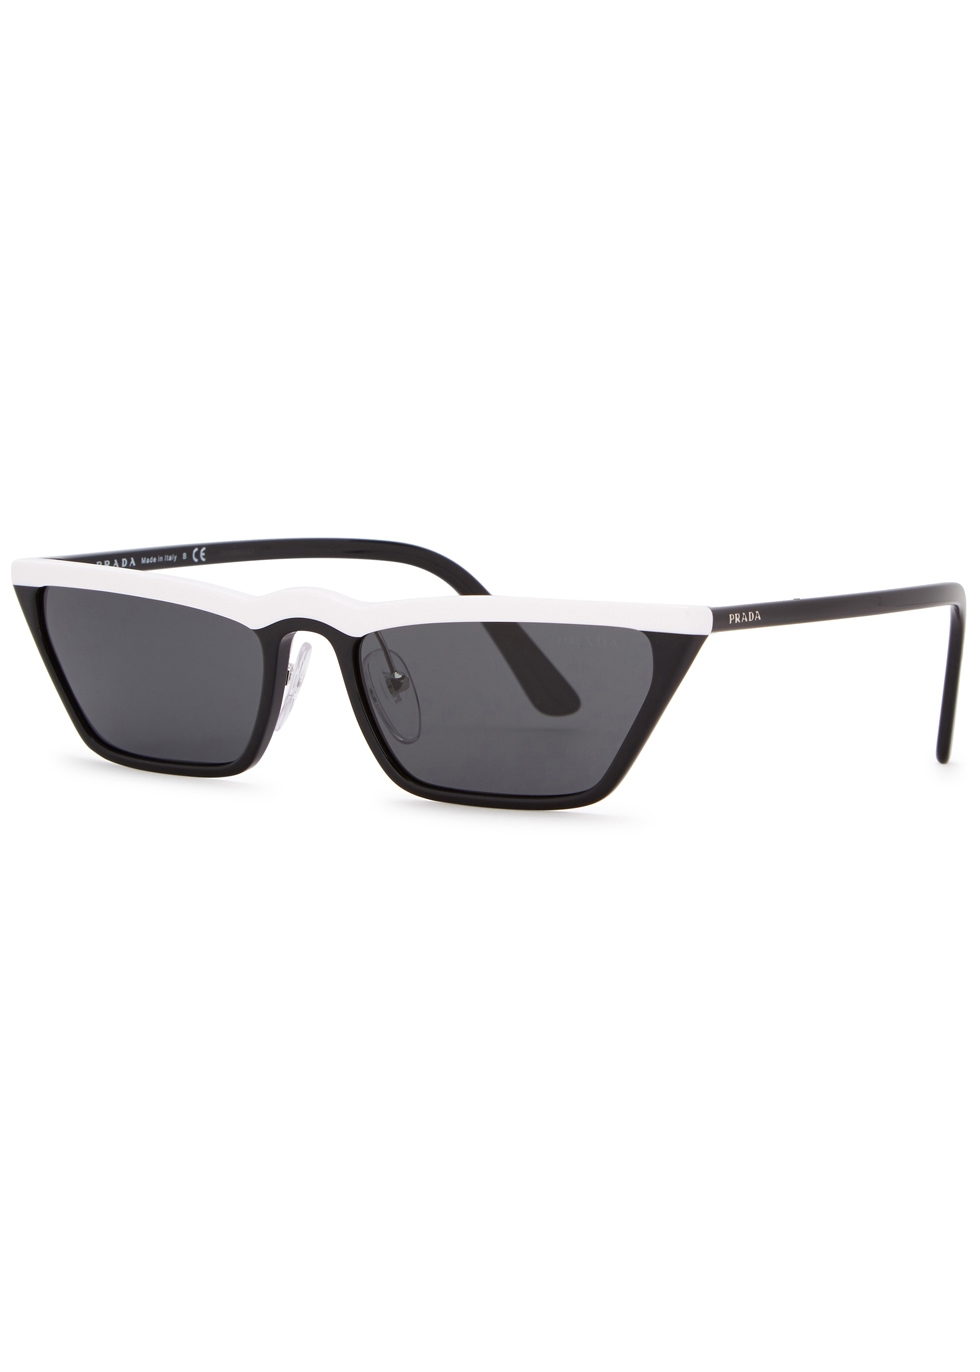 MONOCHROME CAT-EYE SUNGLASSES